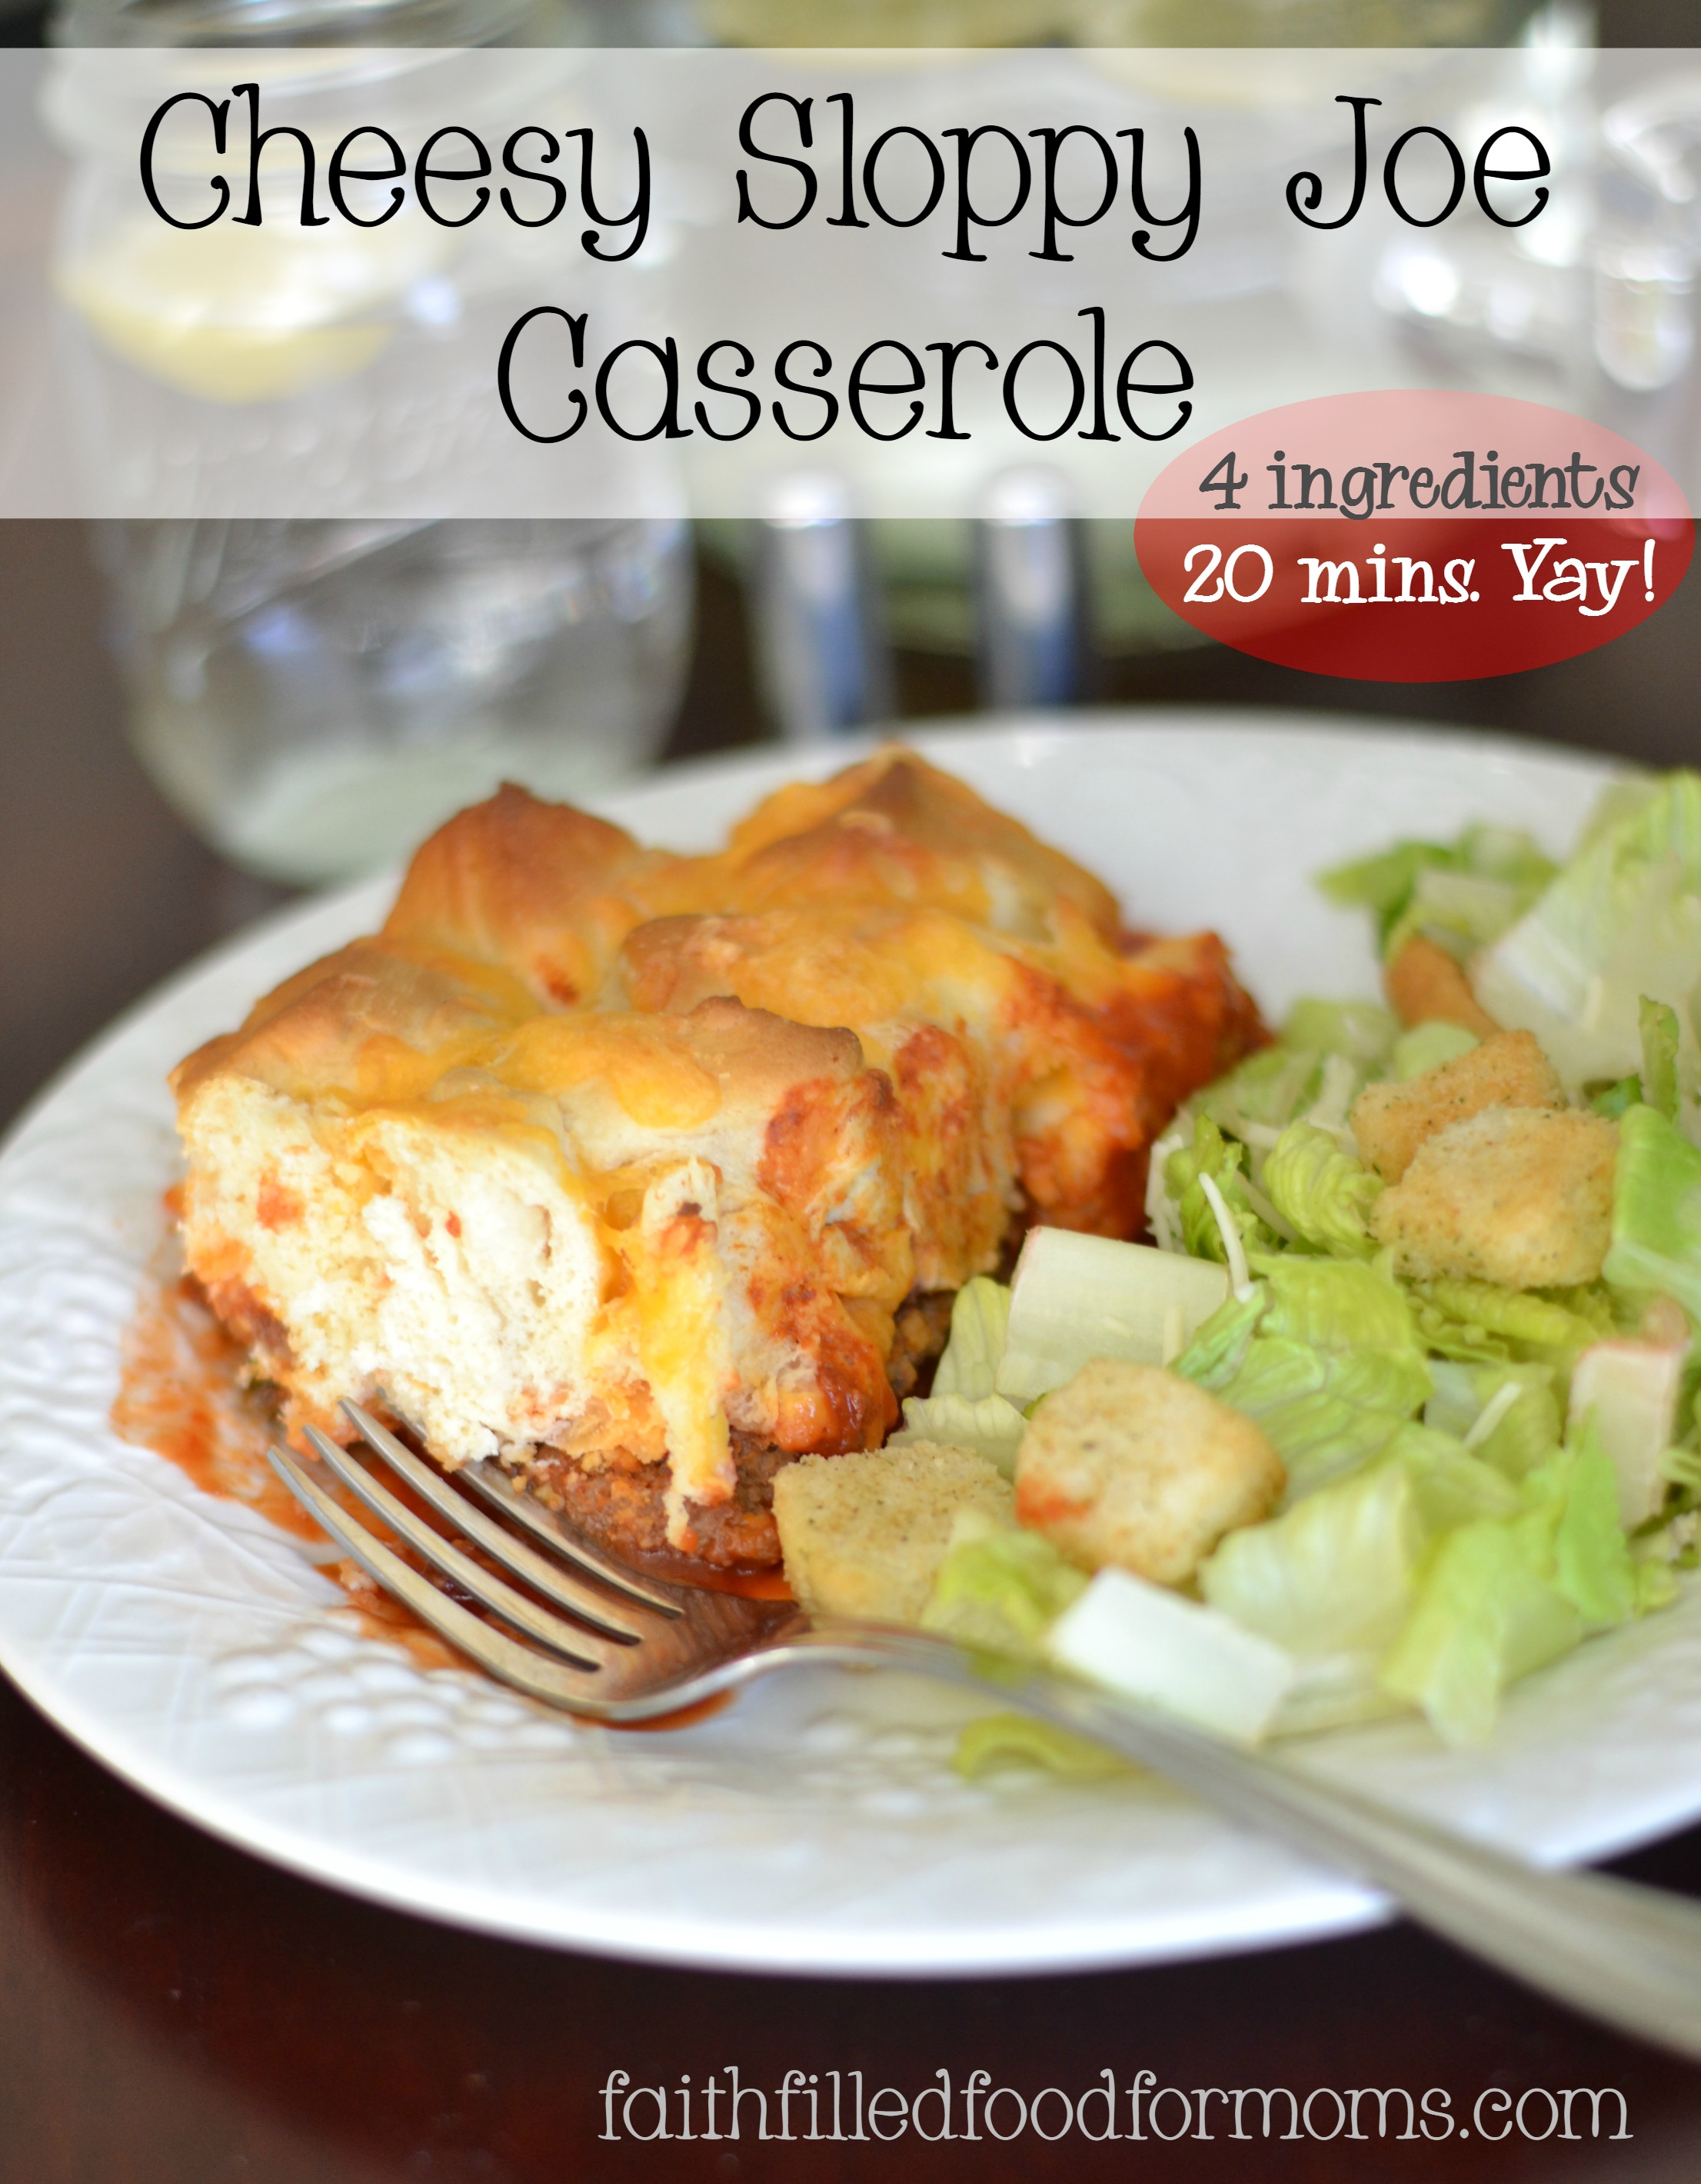 cheesy-sloppy-joe-casserole-4